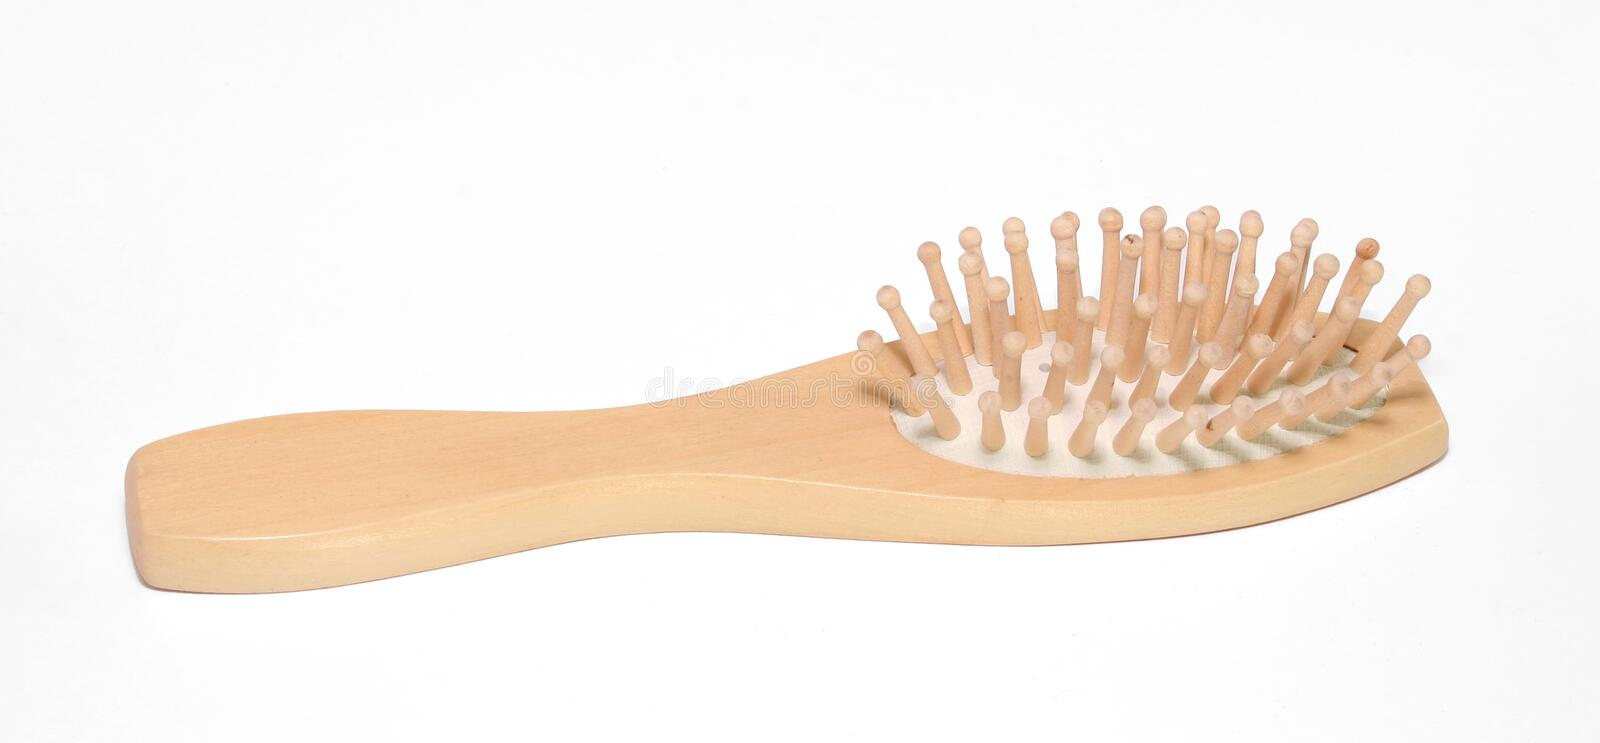 Wood Hair Brush. A wood hair brush against a white background royalty free stock images